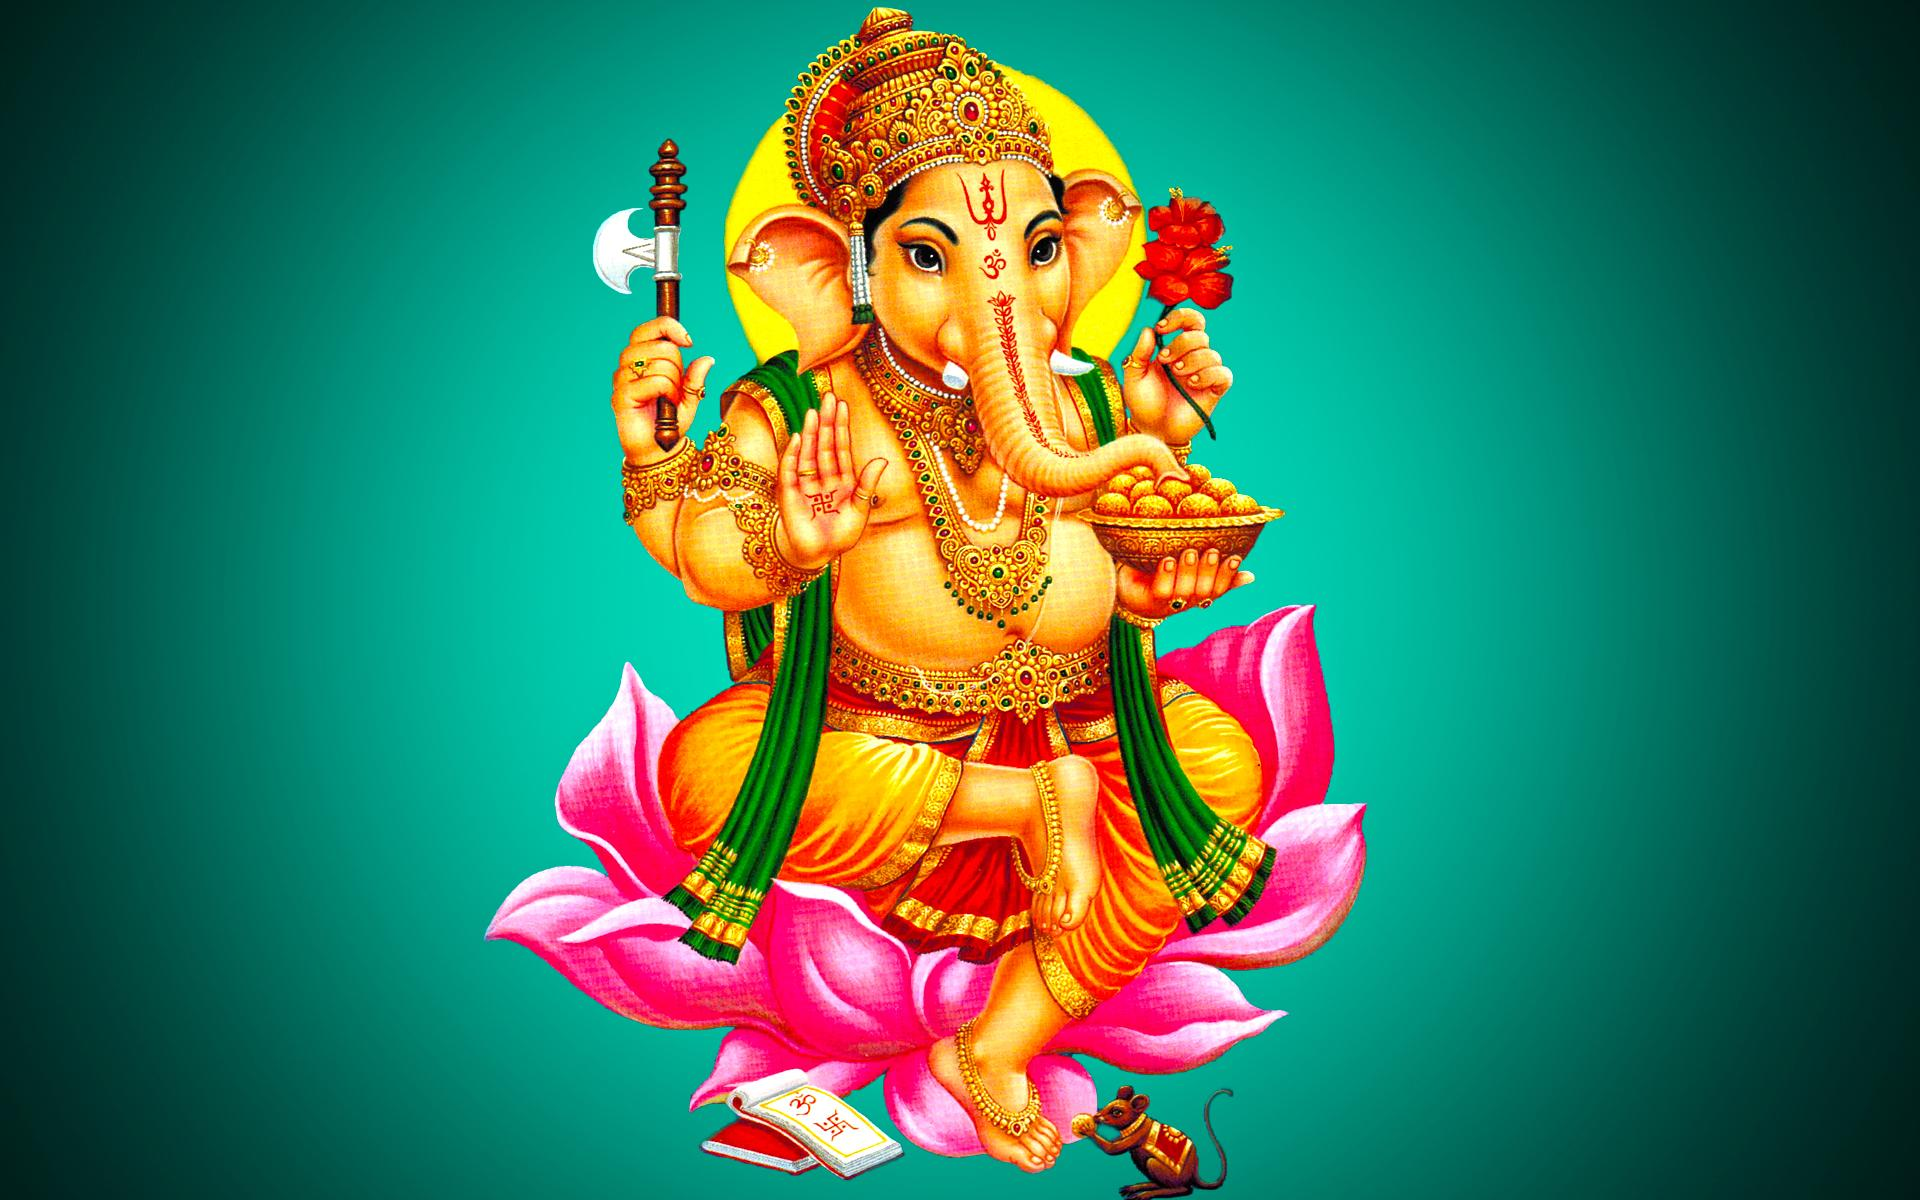 Ganesha Image Hd Posted By Zoey Peltier